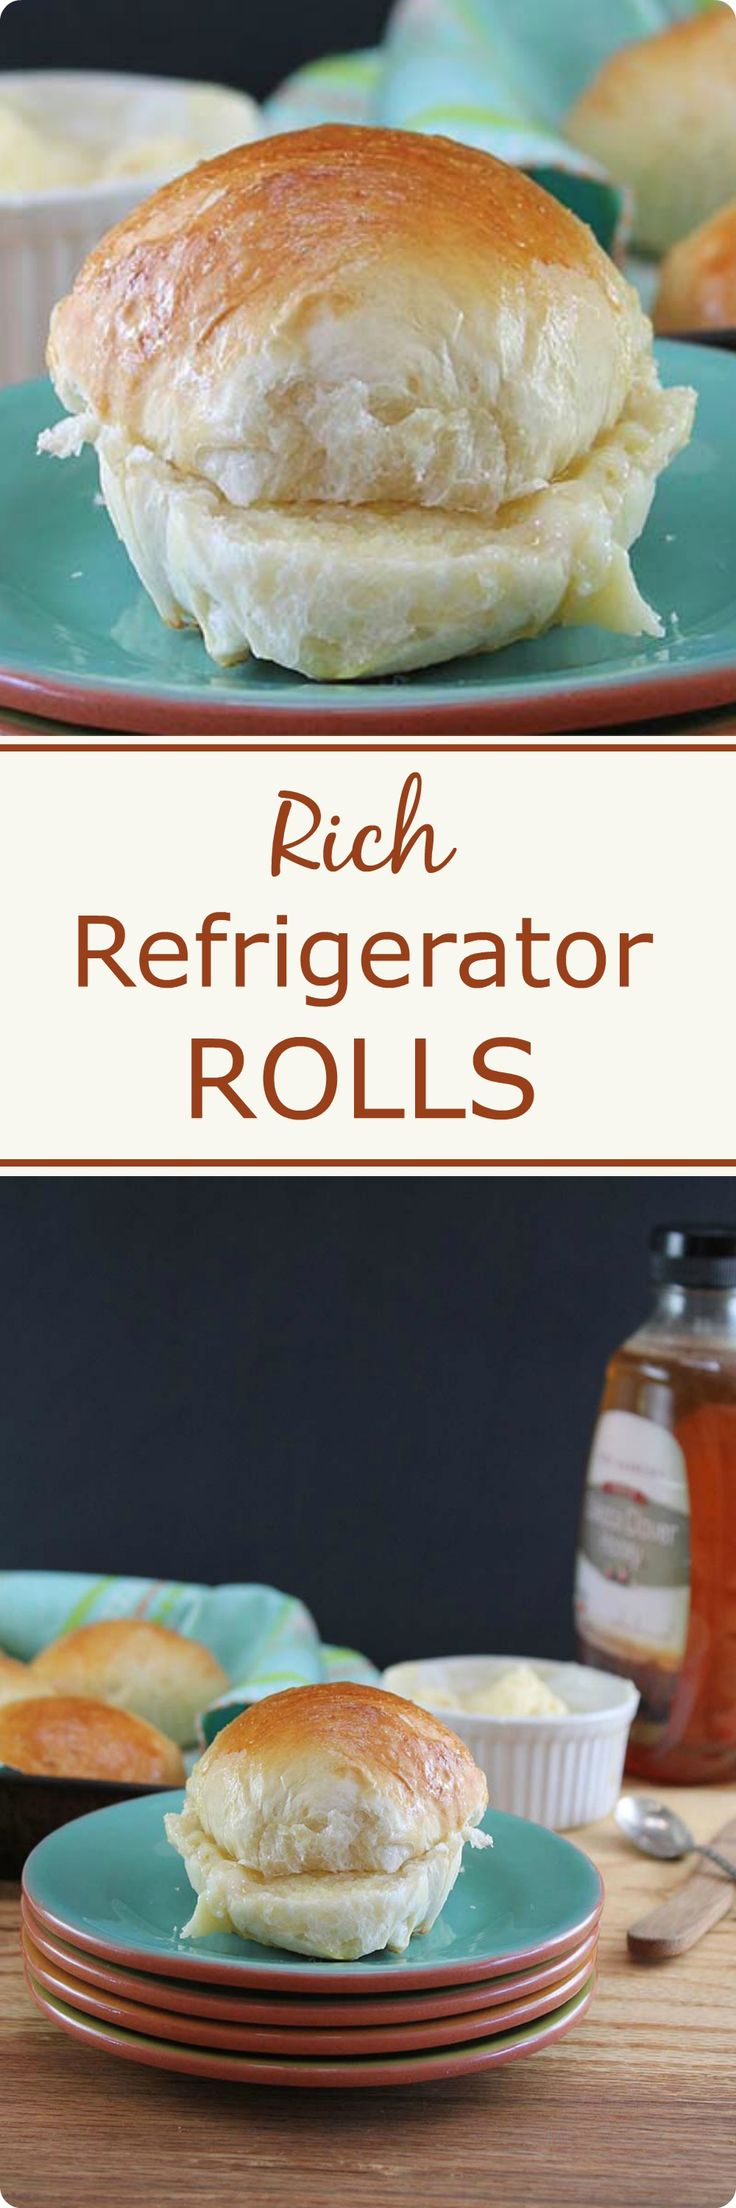 Rich Refrigerator Rolls | Rich Refrigerator Rolls are a flavorful and perfectly light dinner roll, quick to put together and refrigerated over night before baking. Find recipe at redstaryeast.com. #yeastrolls #bread #baking